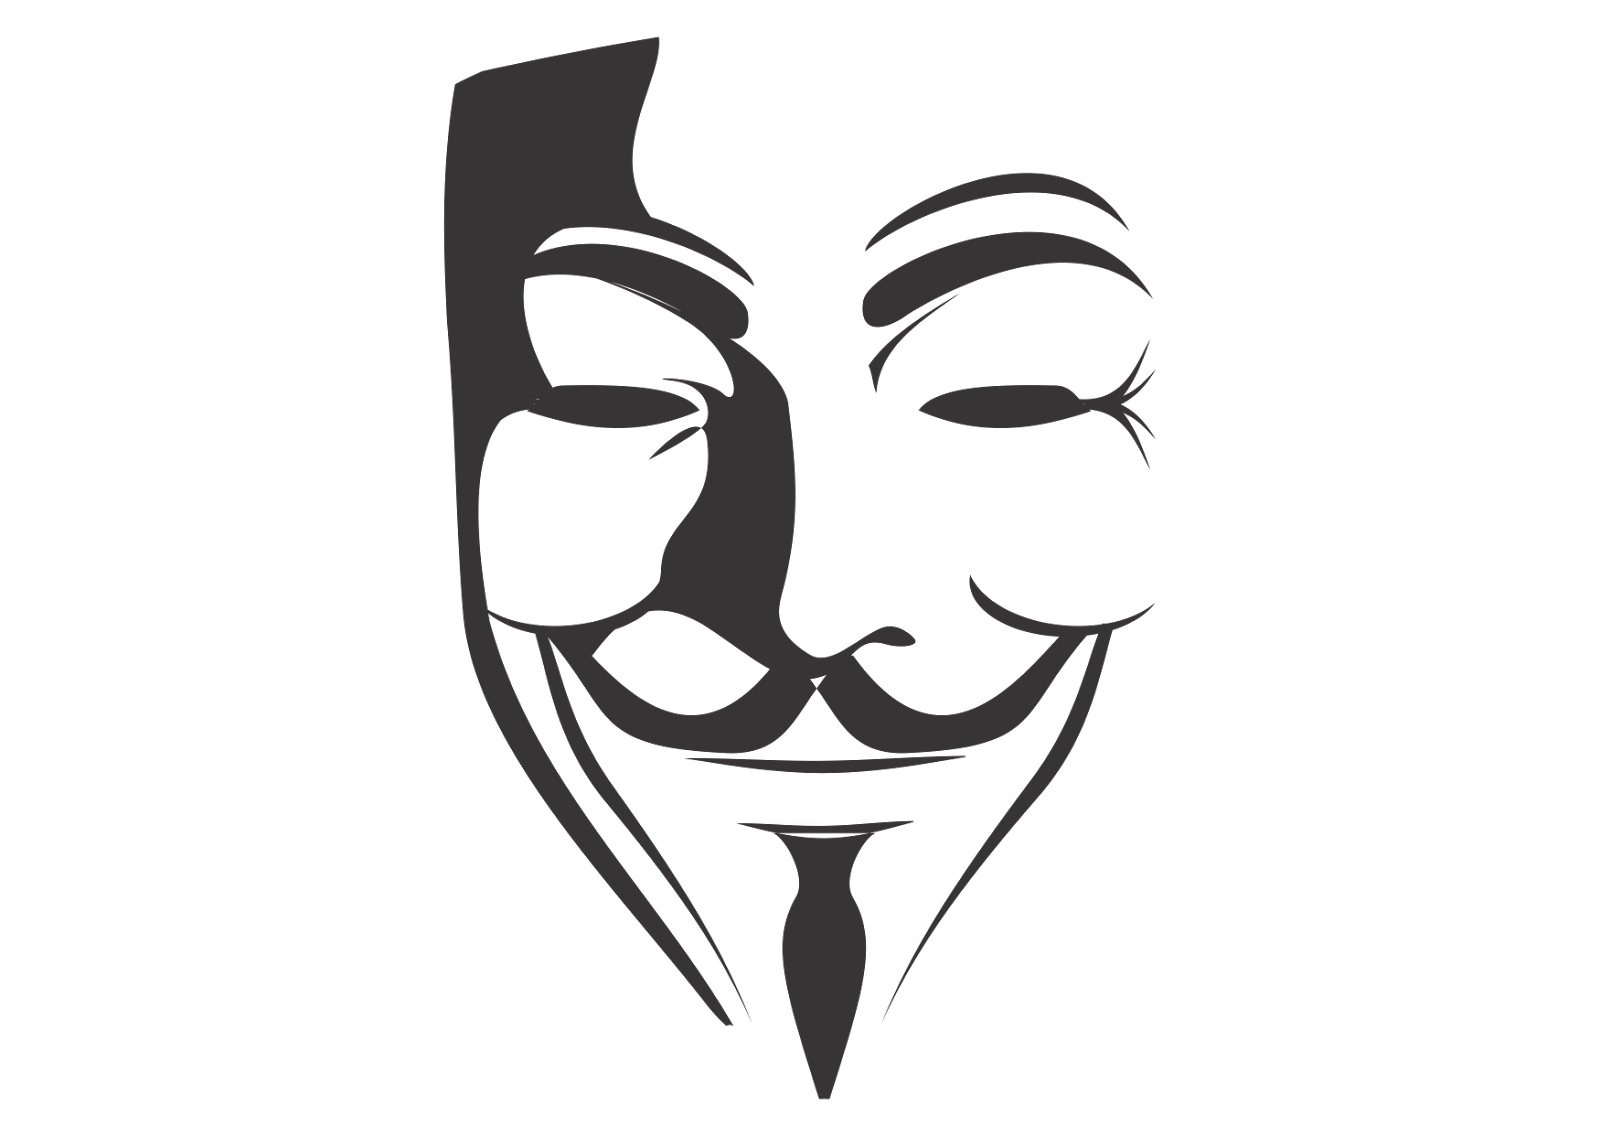 V-for-Vendetta-logo-vector.png (1600×1136) - Anonymous Vector PNG